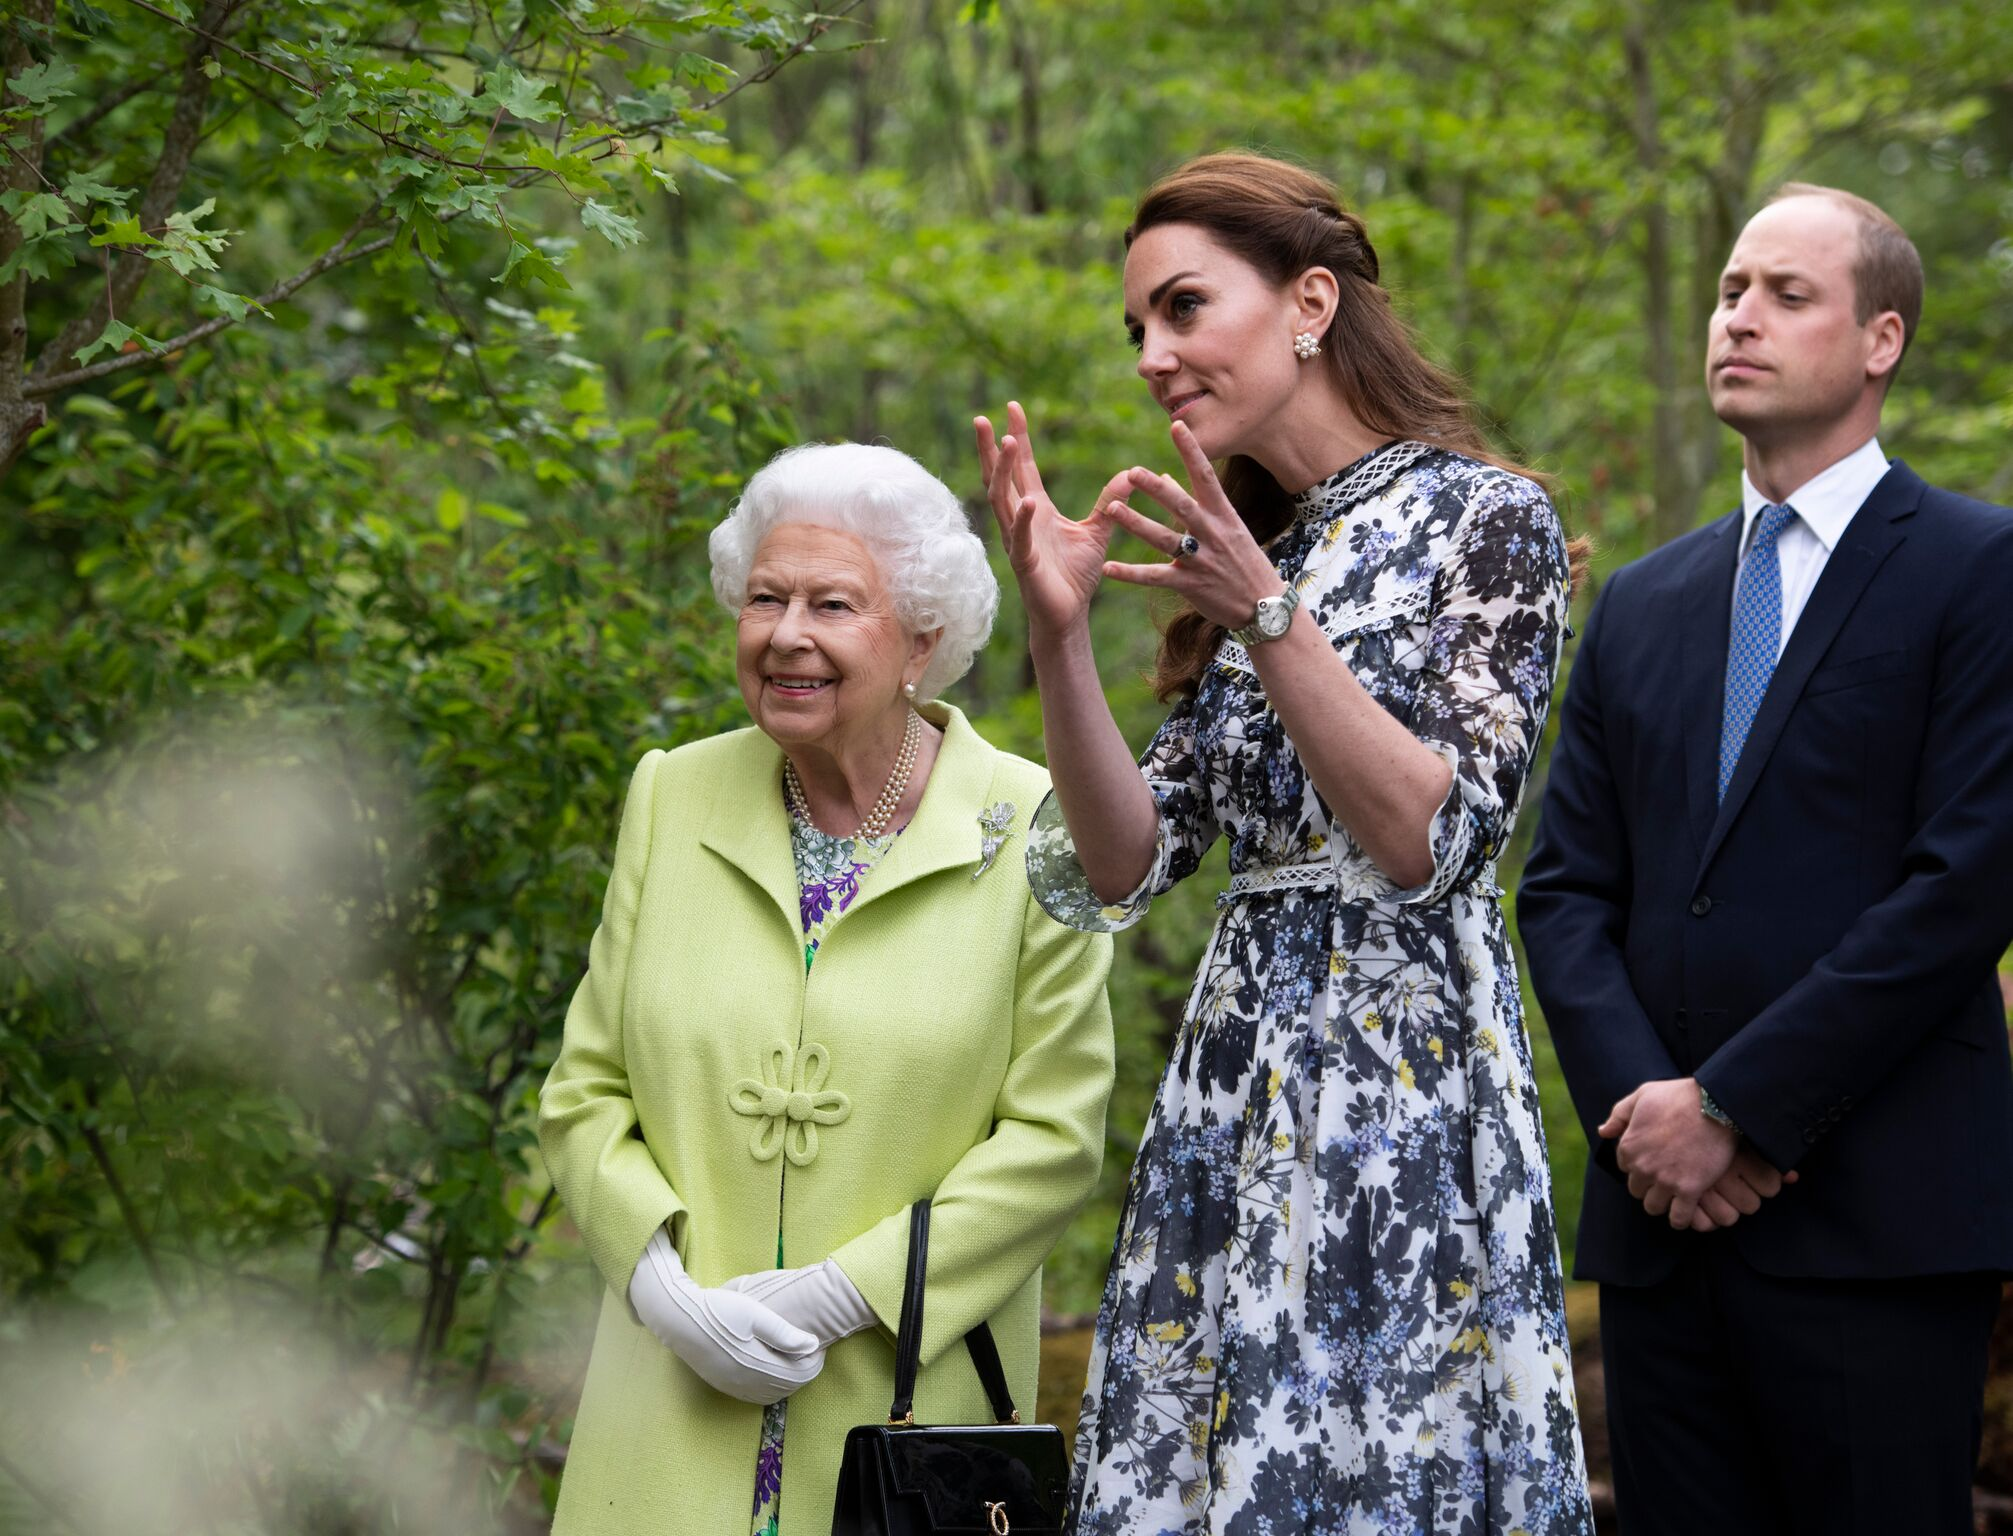 Queen Elizabeth II is shown around 'Back to Nature' by Prince William and Catherine, Duchess of Cambridge | Getty Images